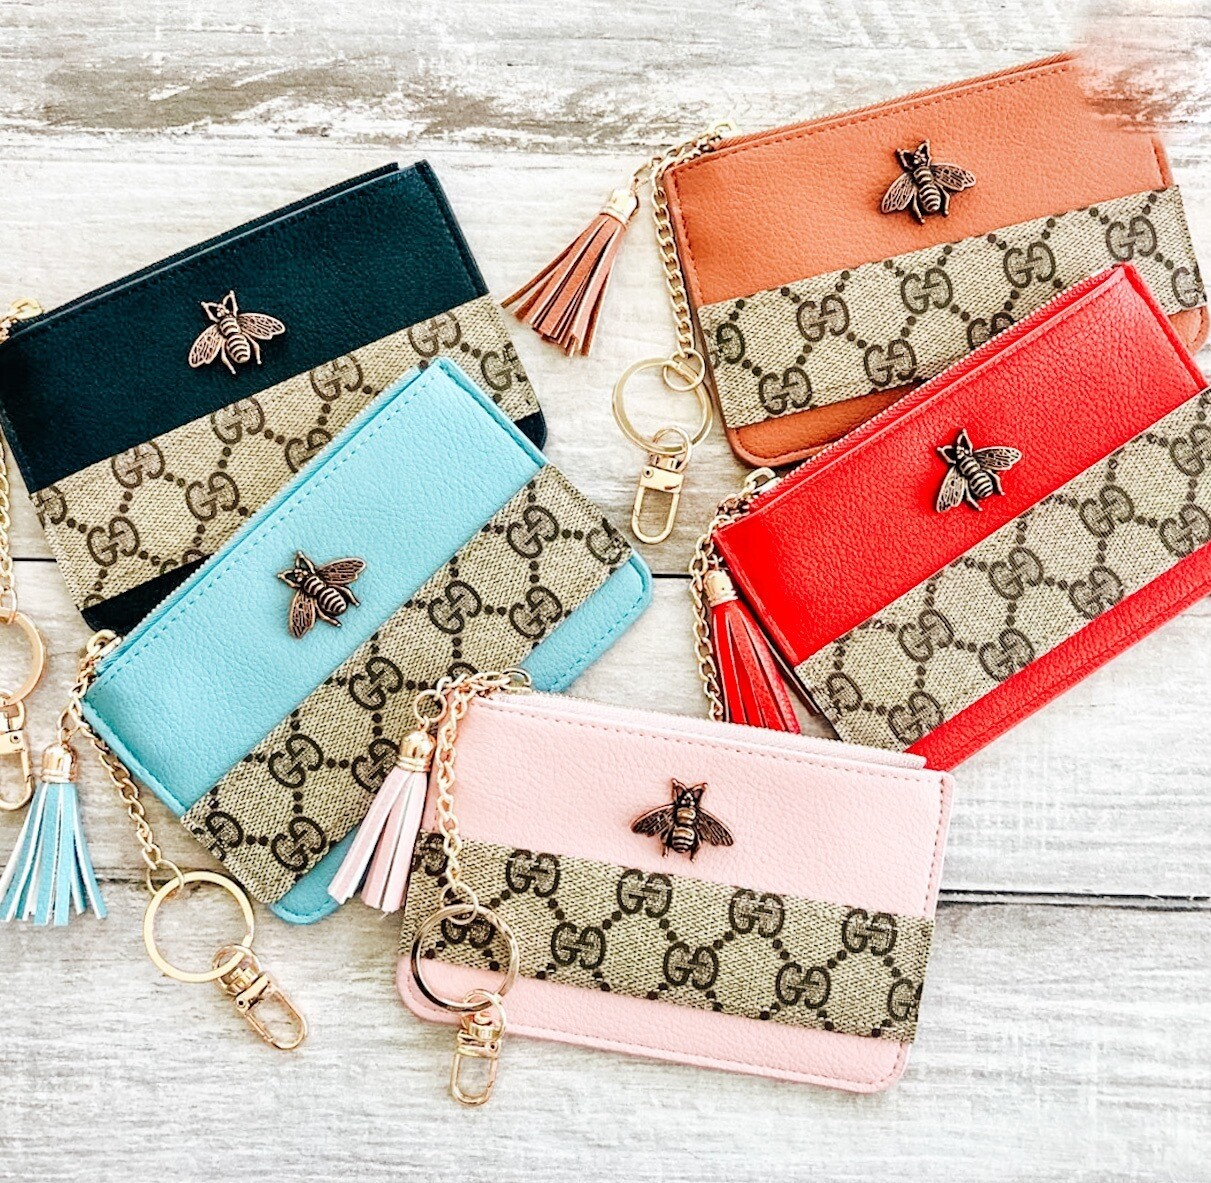 Gucci Upcycled Cardholders